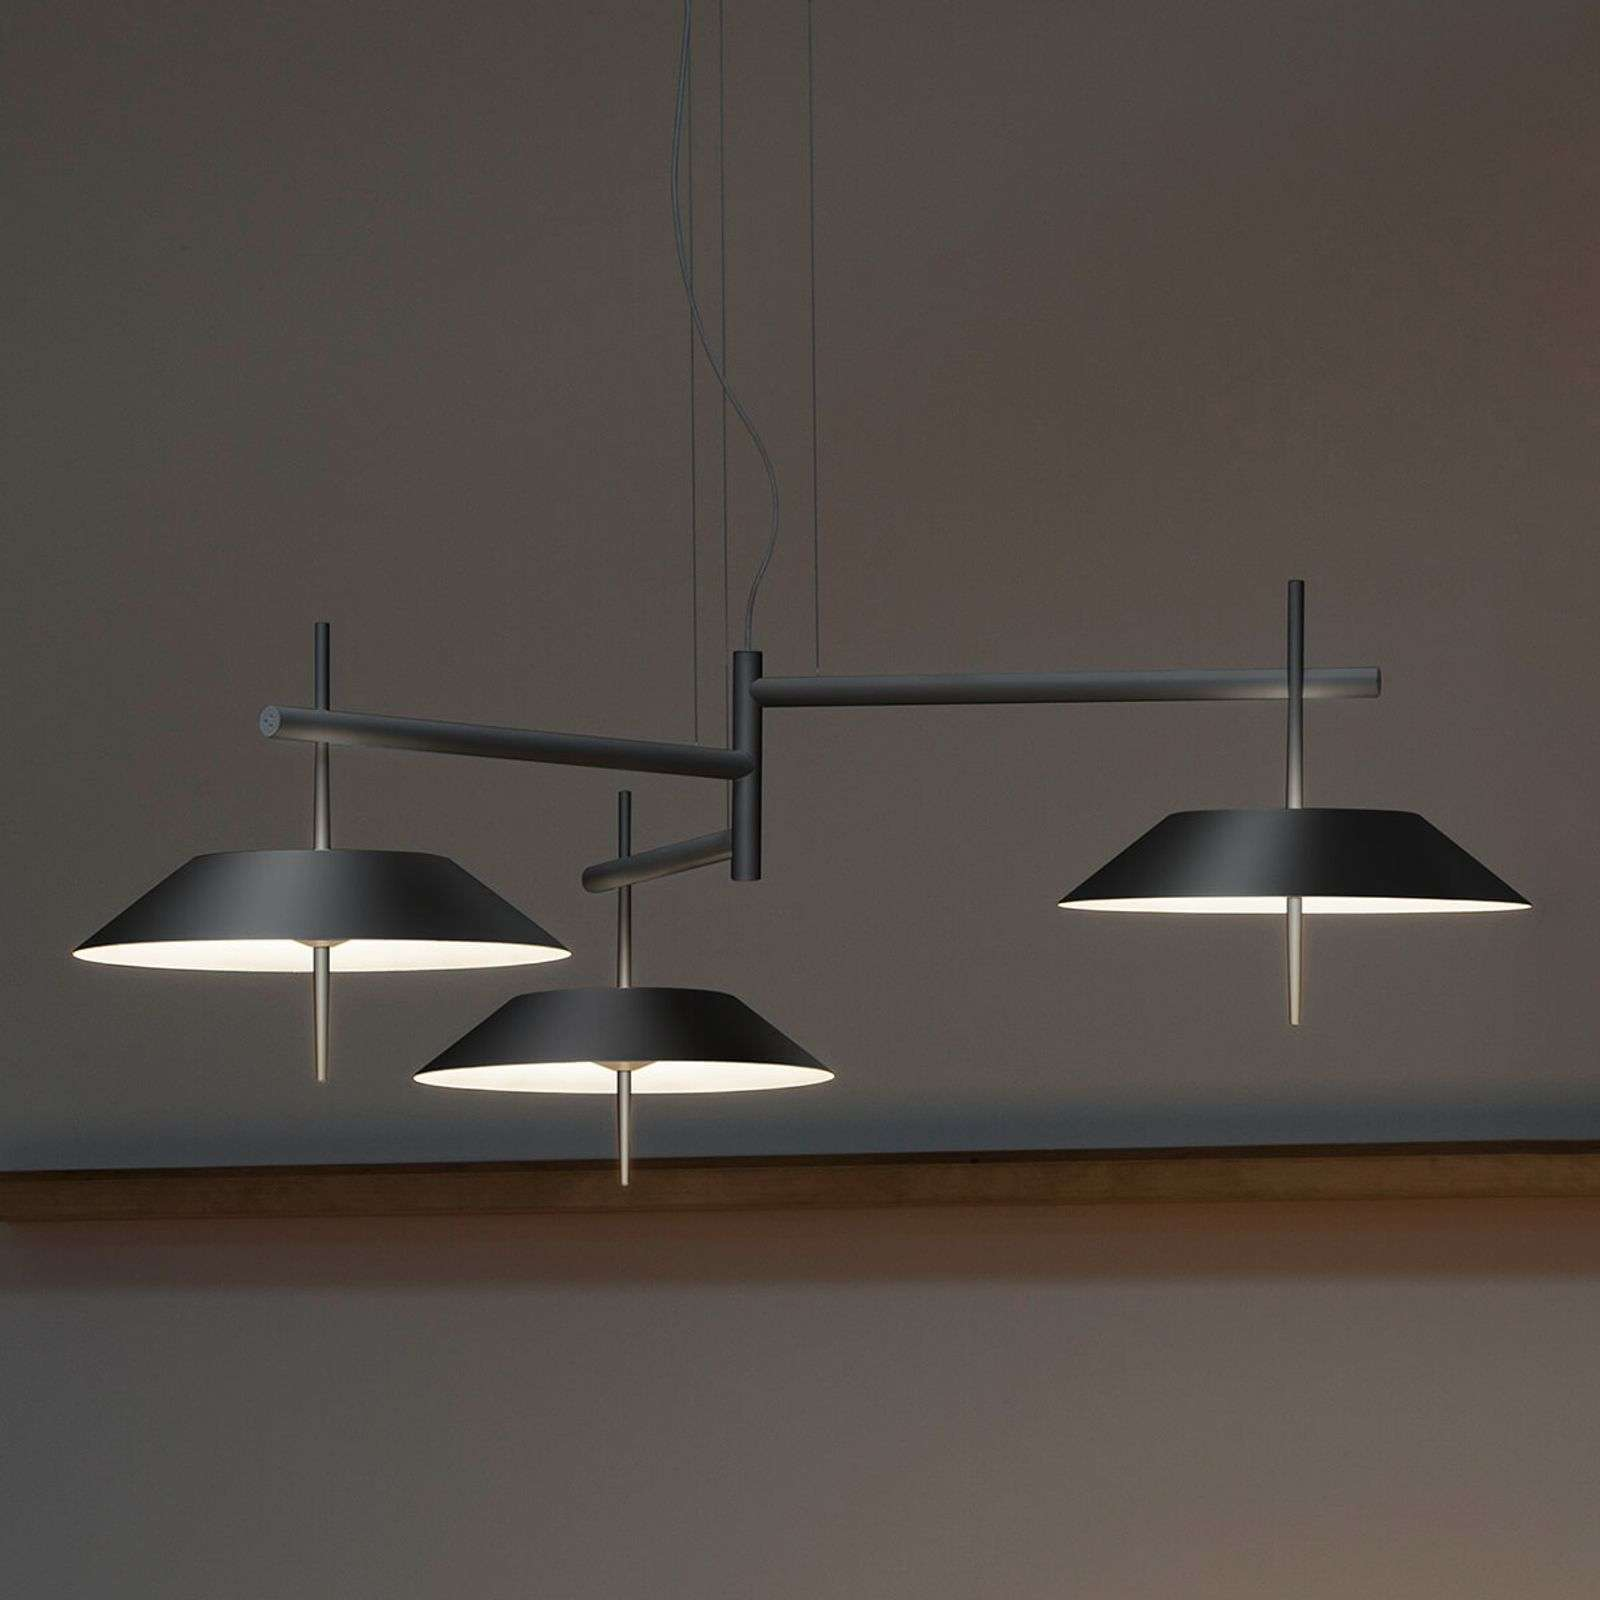 Suspension LED Mayfair 3 lampes, gris graphite